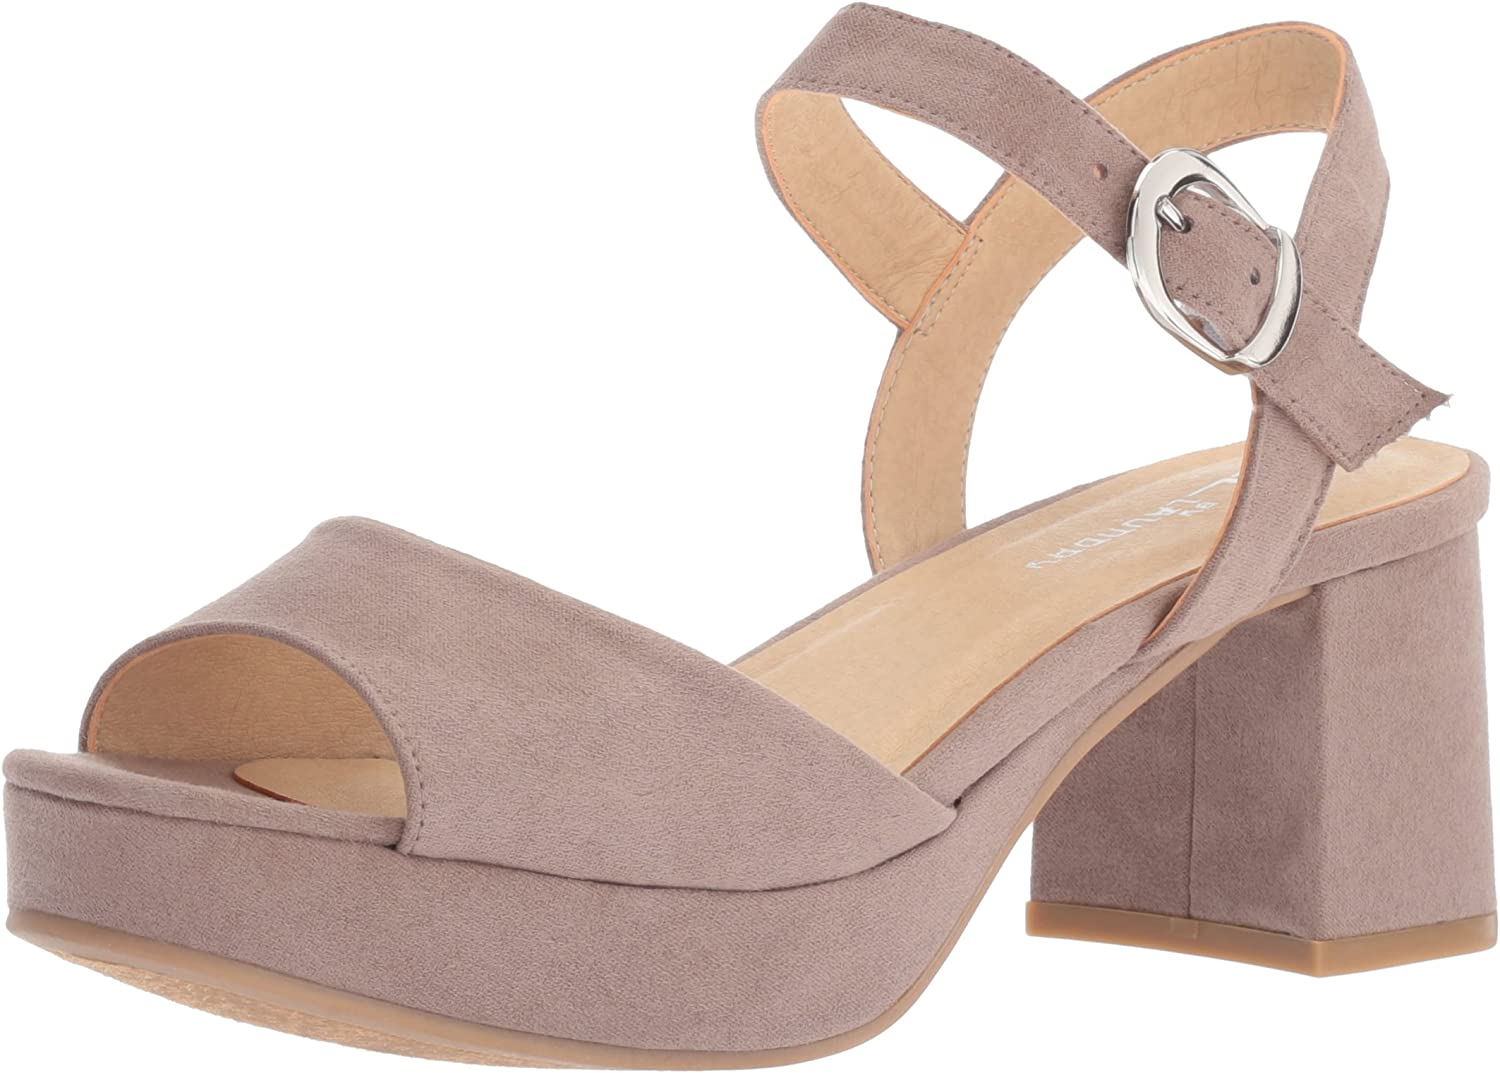 CL by Chinese Laundry Women's Kensie Platform Dress Sandal